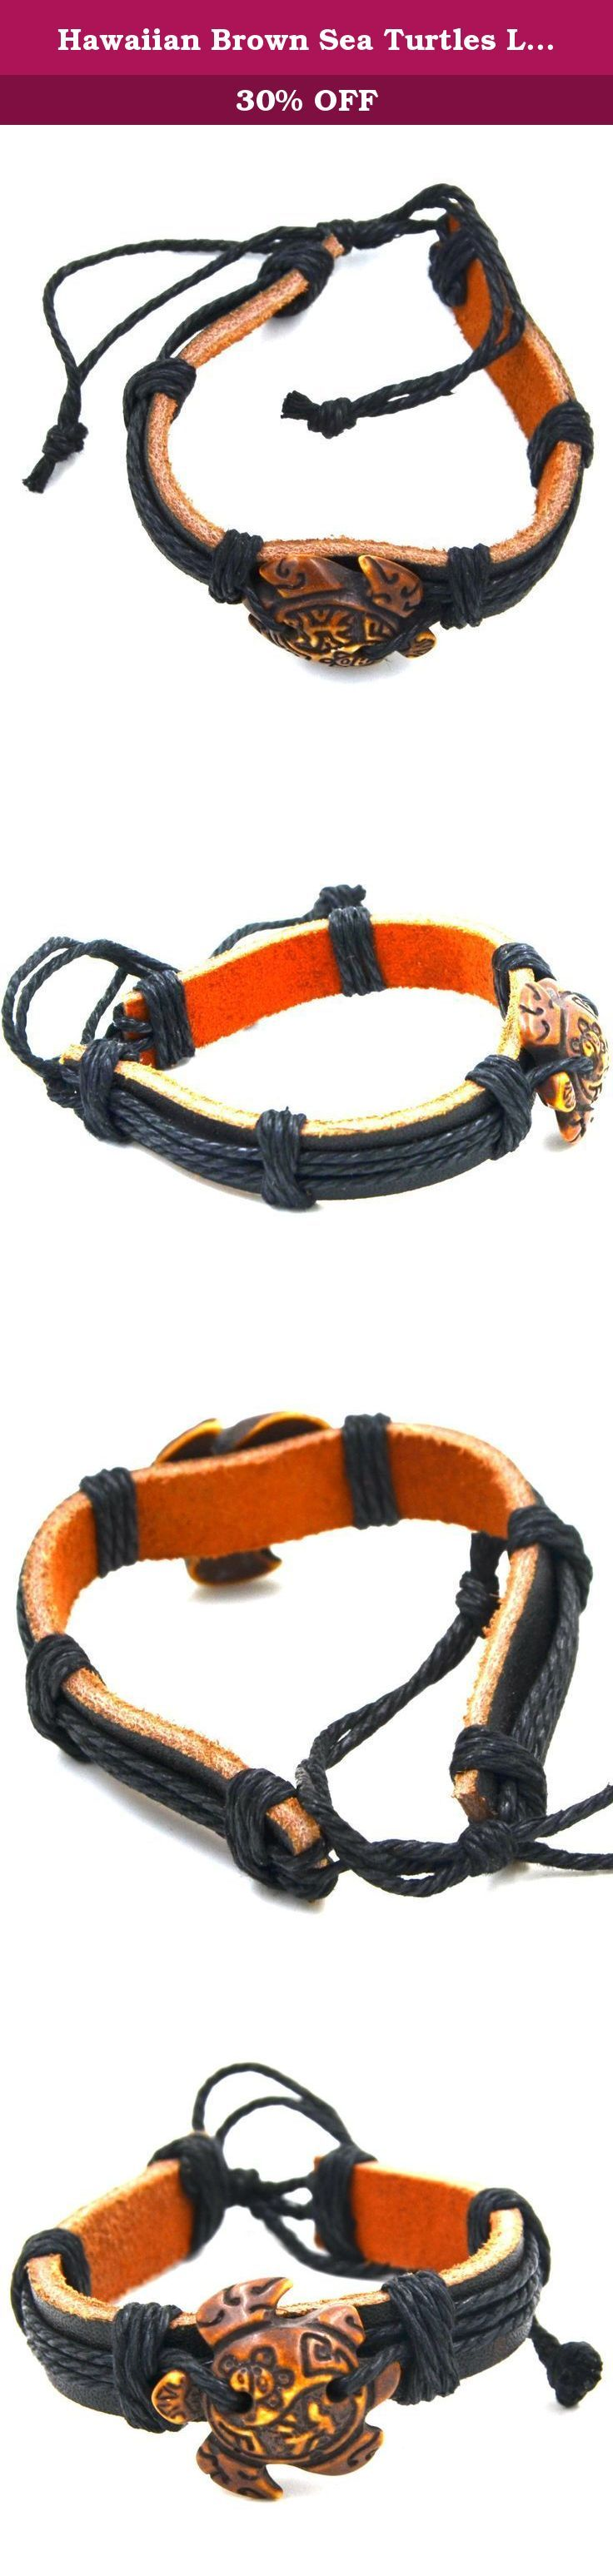 Hawaiian Brown Sea Turtles Leather Bracelet - Coqui Taino and Taino Sun - Adjustable Cord. 90 DAY MONEY BACK GUARANTEE-100% satisfaction guaranteed. That is our promise. So, if you're not completely happy with your purchase within the first 90 days, just let us know. We will do whatever it takes to make it right Provide The Best Quality jewelry and Customer Service on Amazon. About Feedback: Your satisfaction and positive feedback is very important to us. Please leave positive feedback and…